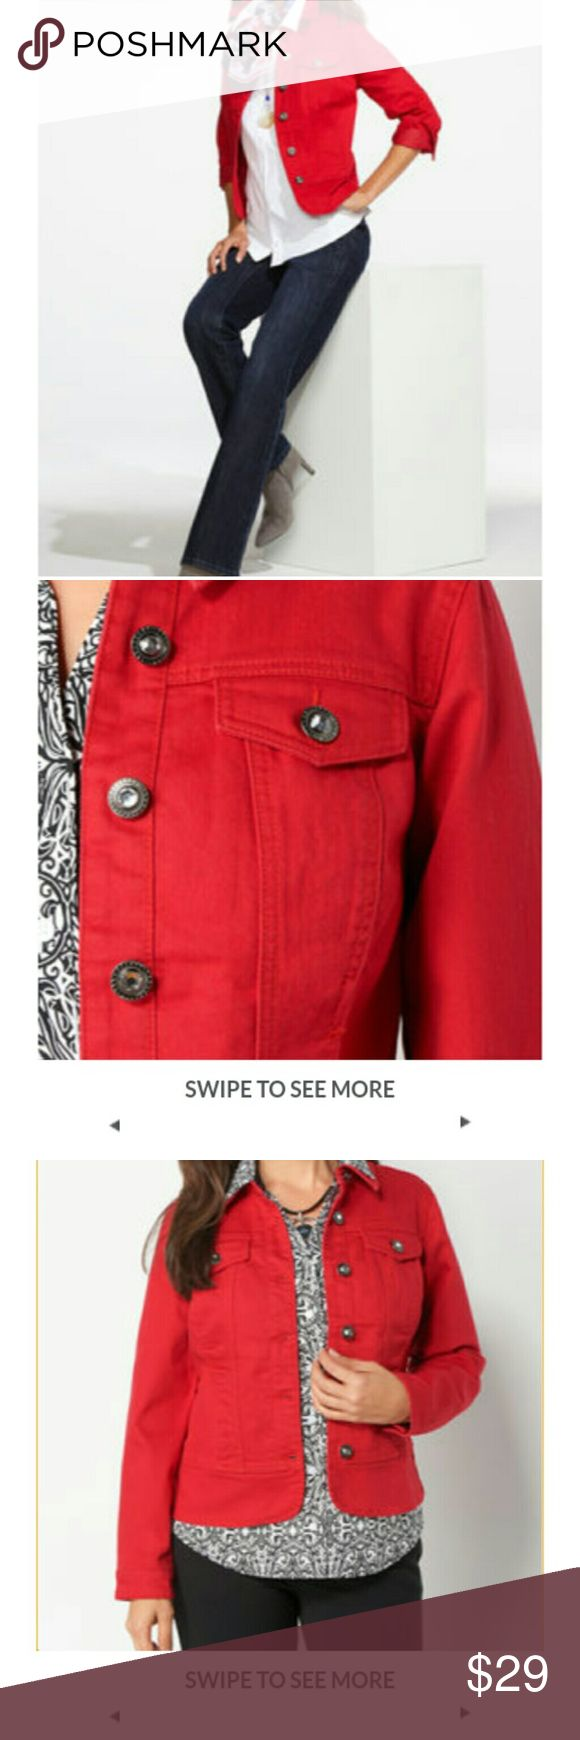 "CHRISTOPHER &BANKS RED DENIM JACKET Finish your look in the bold style of this red jean jacket. It features a classic silhouette with shimmery rhinestone buttons and chest pockets.Jean jacketChest pockets23.5"" length (size M)Long sleeveDenimMachine wash cold Christopher & Banks Jackets & Coats"